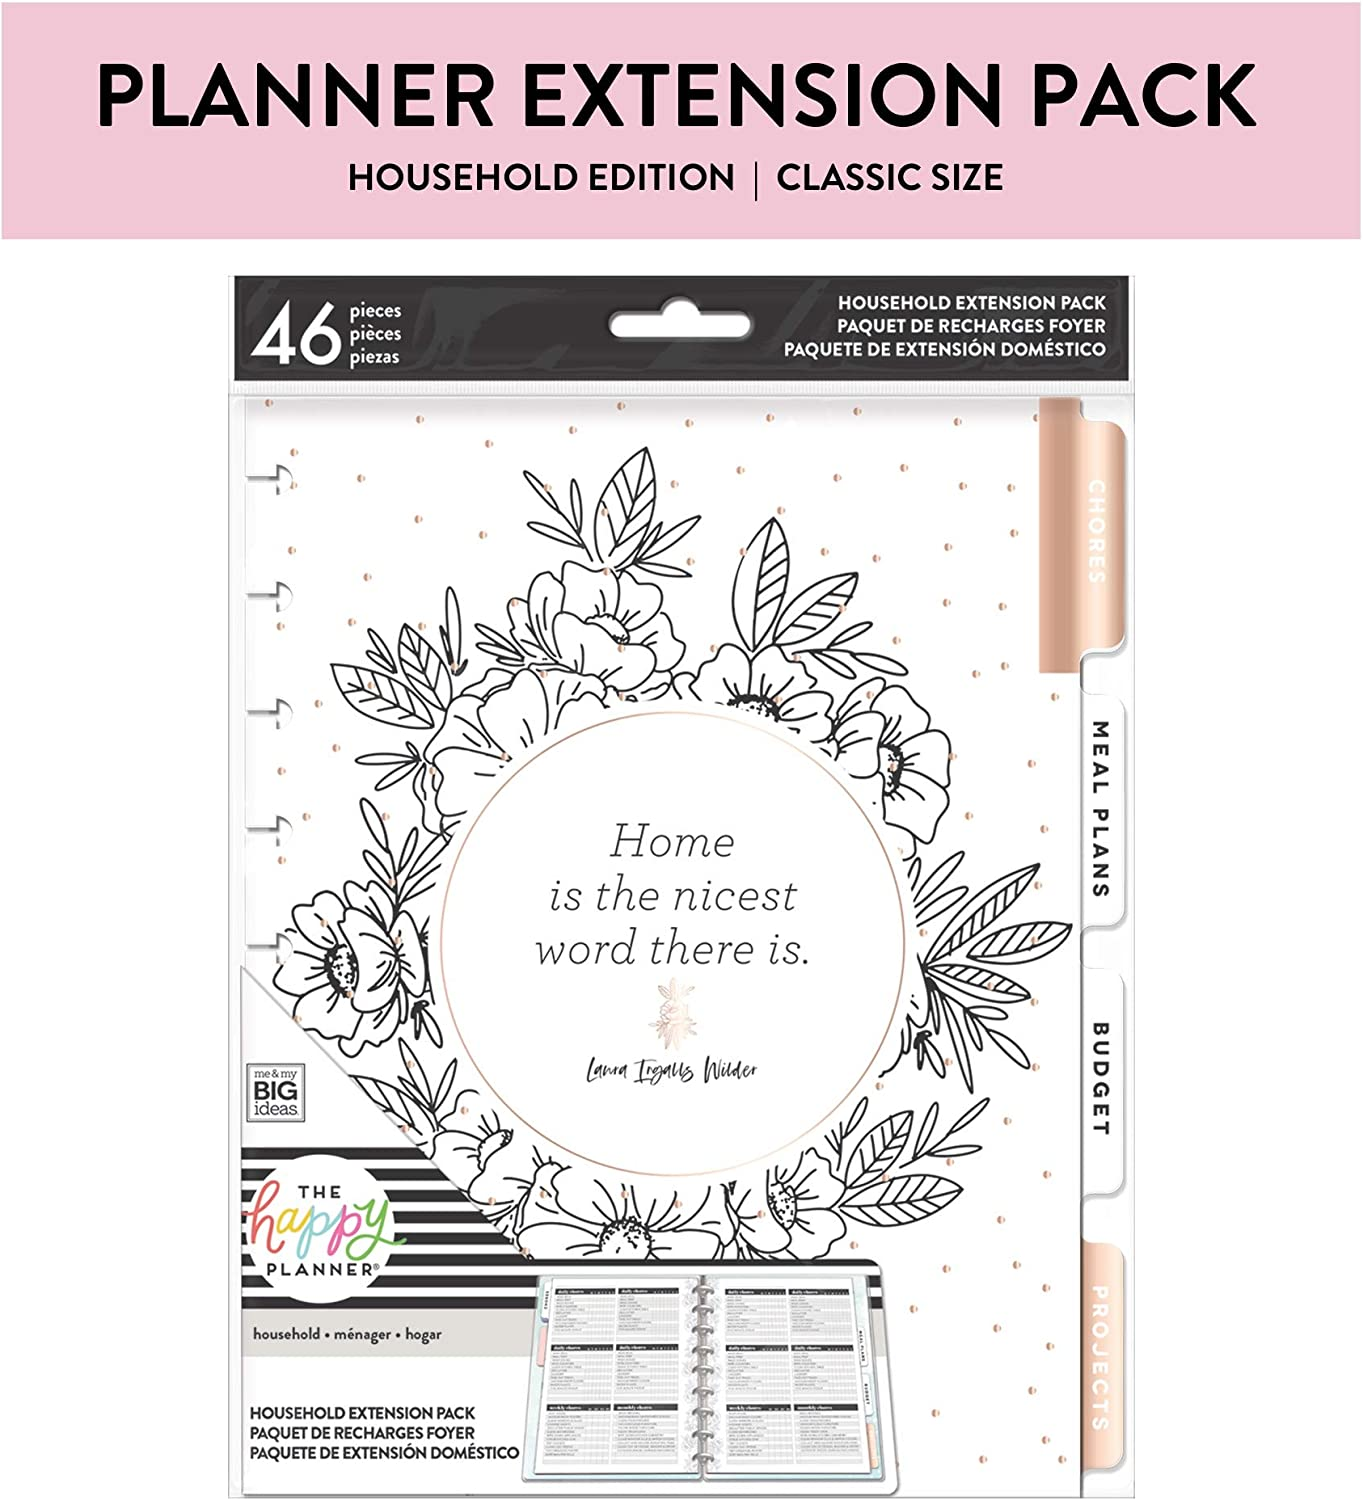 me & my BIG ideas Home Extension Pack - The Happy Planner Scrapbooking Supplies - Organizer for Household Duties - Plan Your Budget & Chores, Make Grocery Lists & Meal Plans - Classic Size